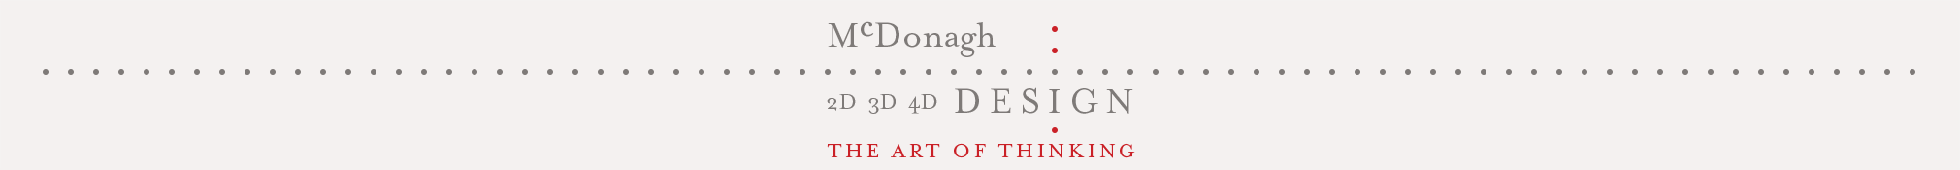 Natalie Mc Donagh - The art of design